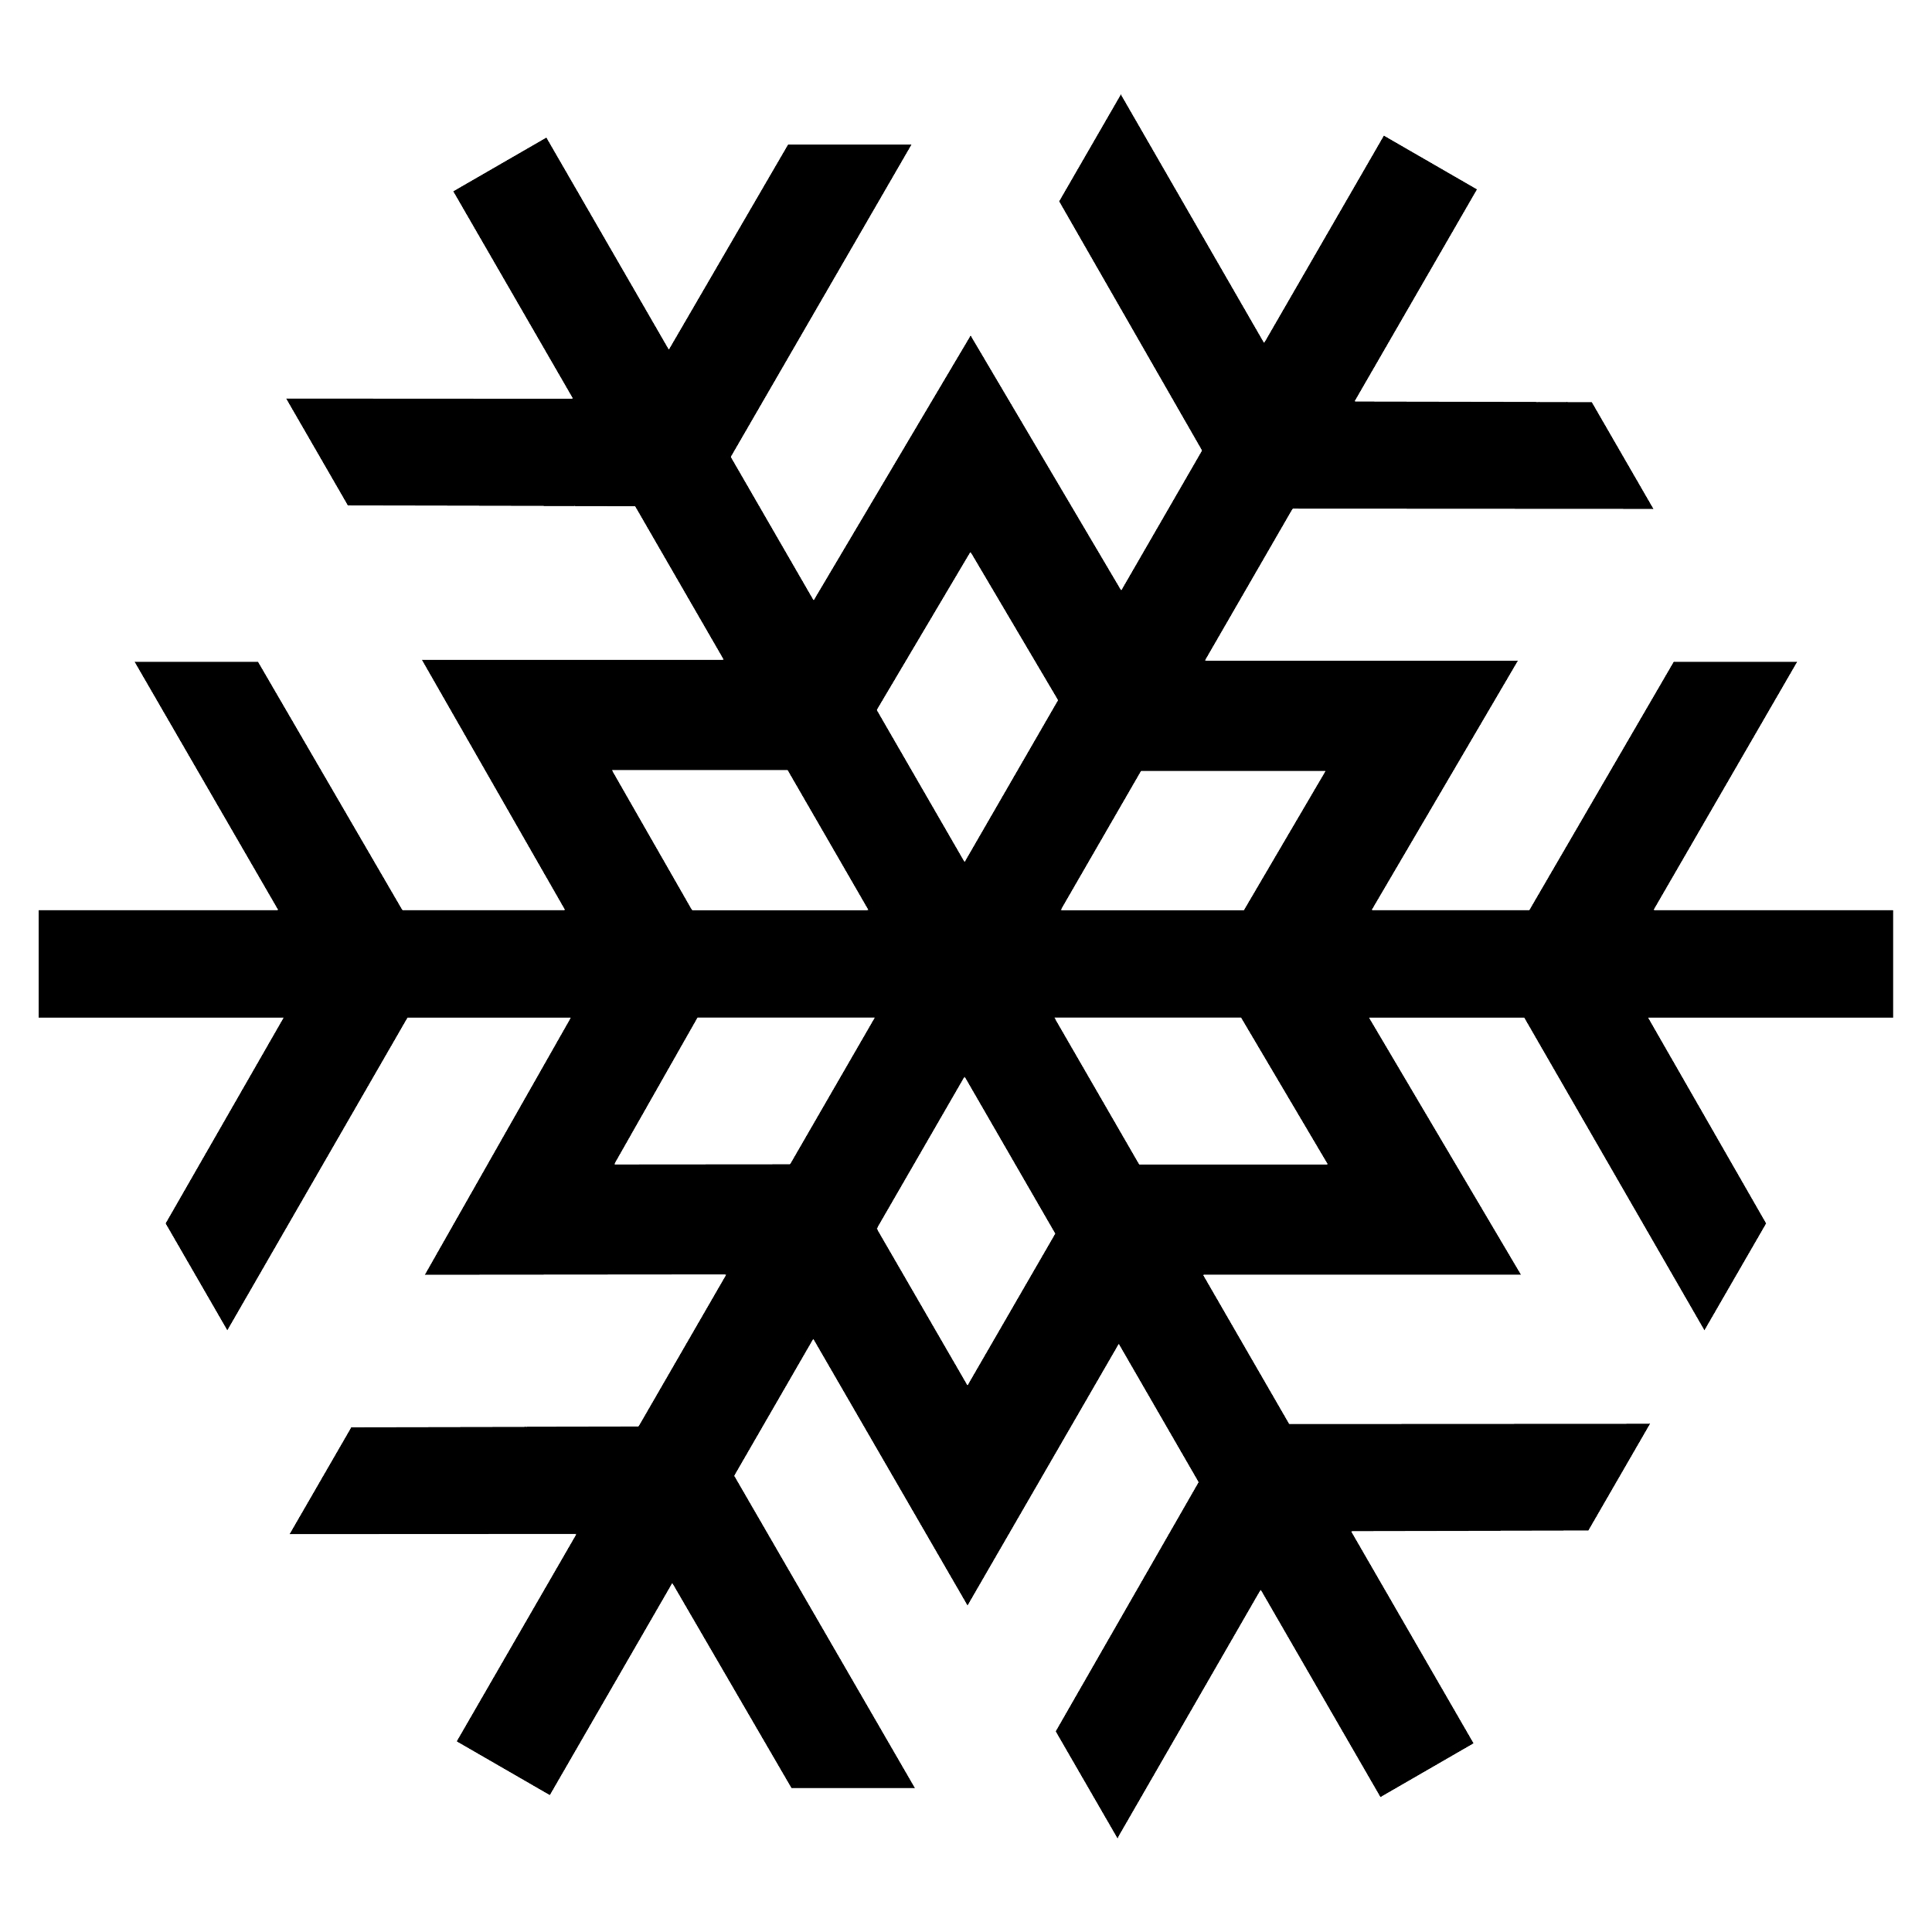 Fancy black snowflake clipart clipart free stock 28+ Collection of Chunky Snowflake Clipart | High quality, free ... clipart free stock